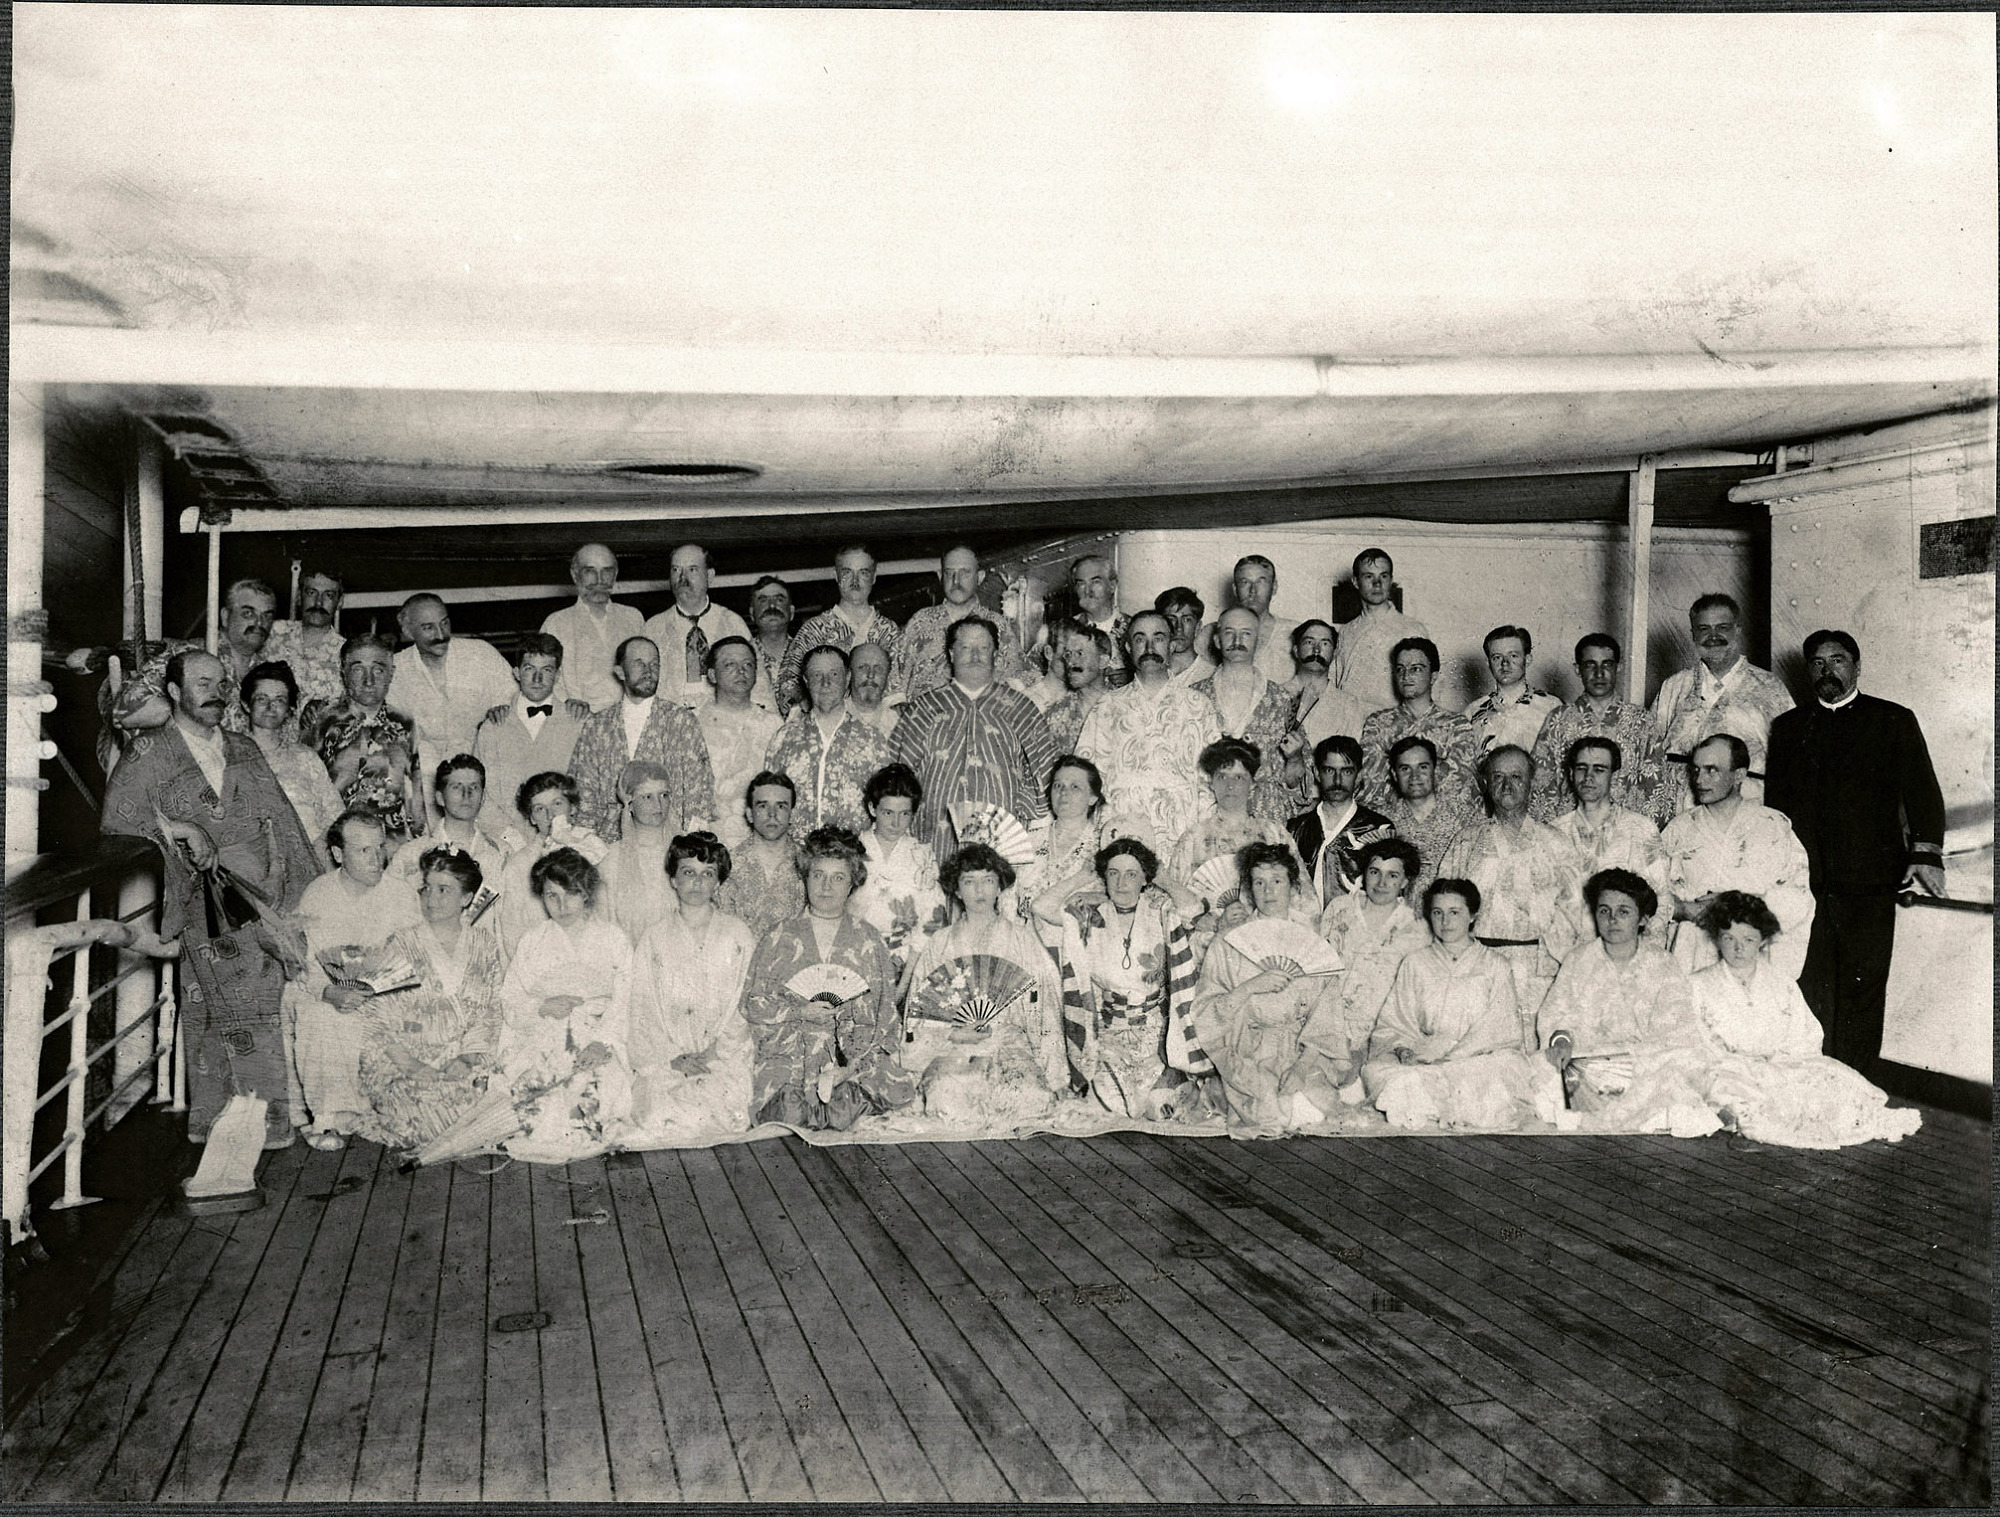 Passengers aboard the SS Manchuria dressed in kimono for an evening party